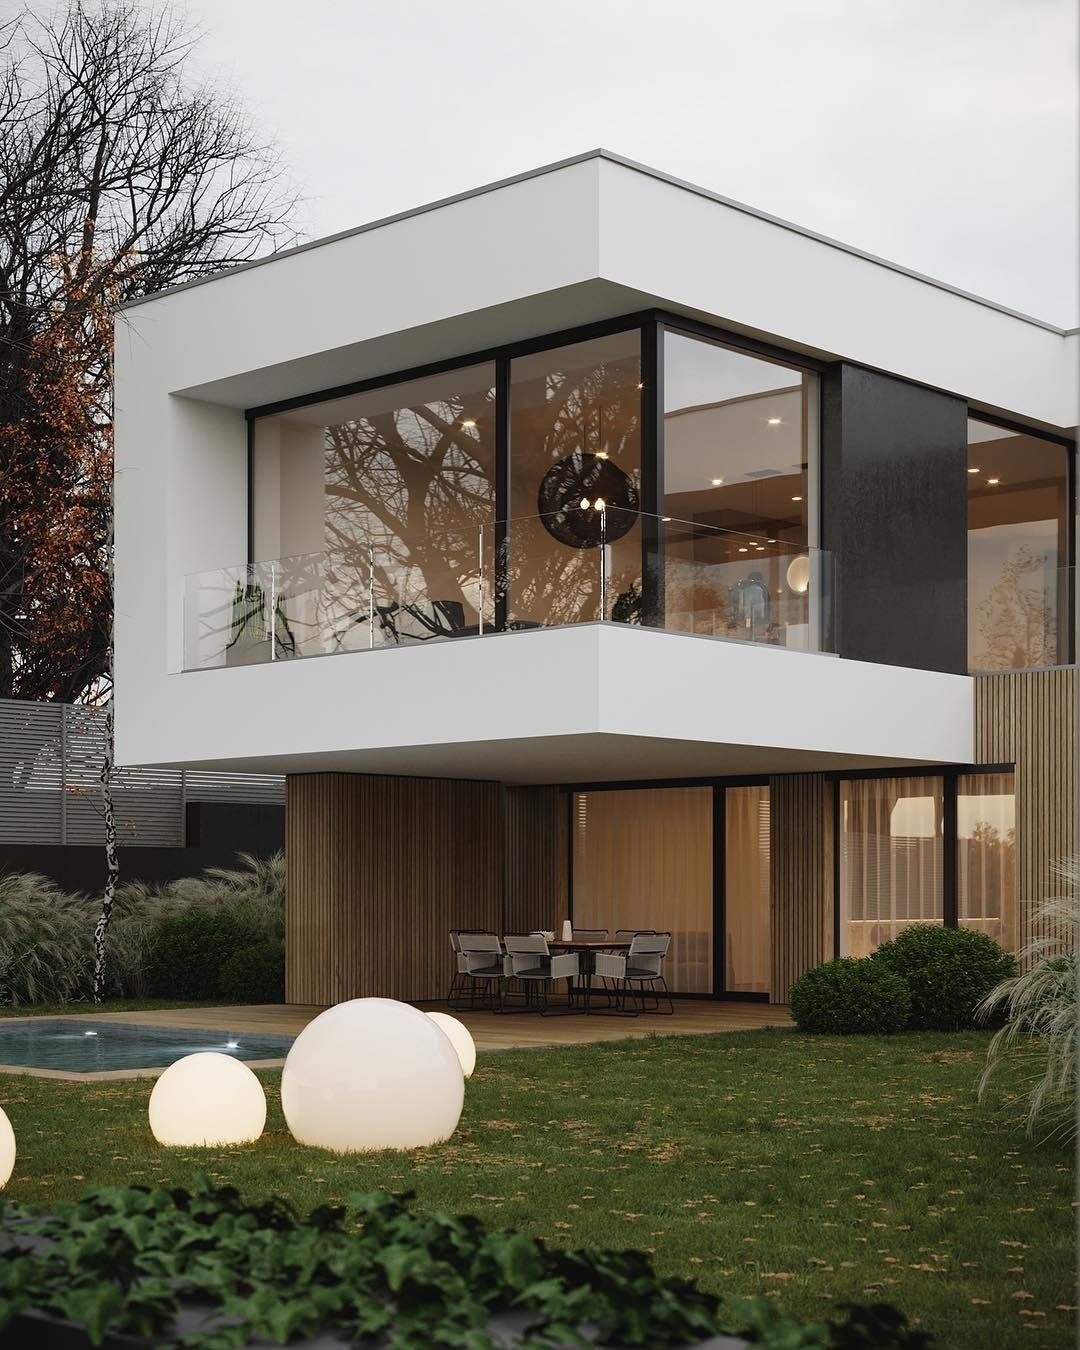 """DOPE DECORS on Instagram: """"Swipe left! What do you think? The Zahorska House is a home of simplicity and calmness where the combination of wood, white and dark…"""""""